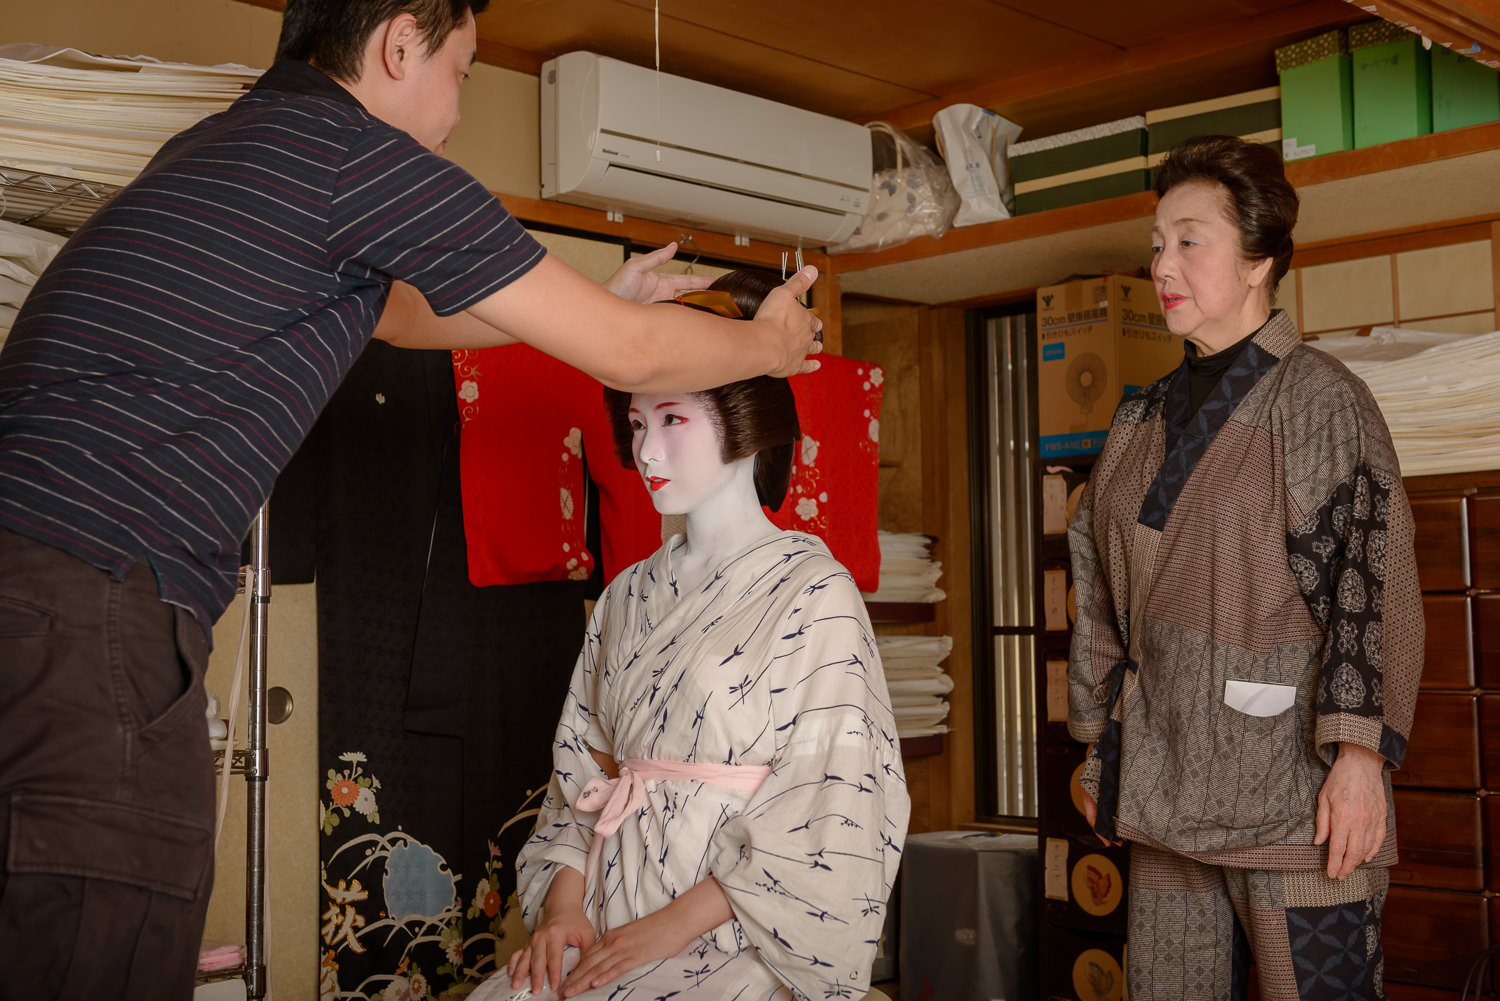 New Geisha Mameharu's katsura is adjusted during her erikae